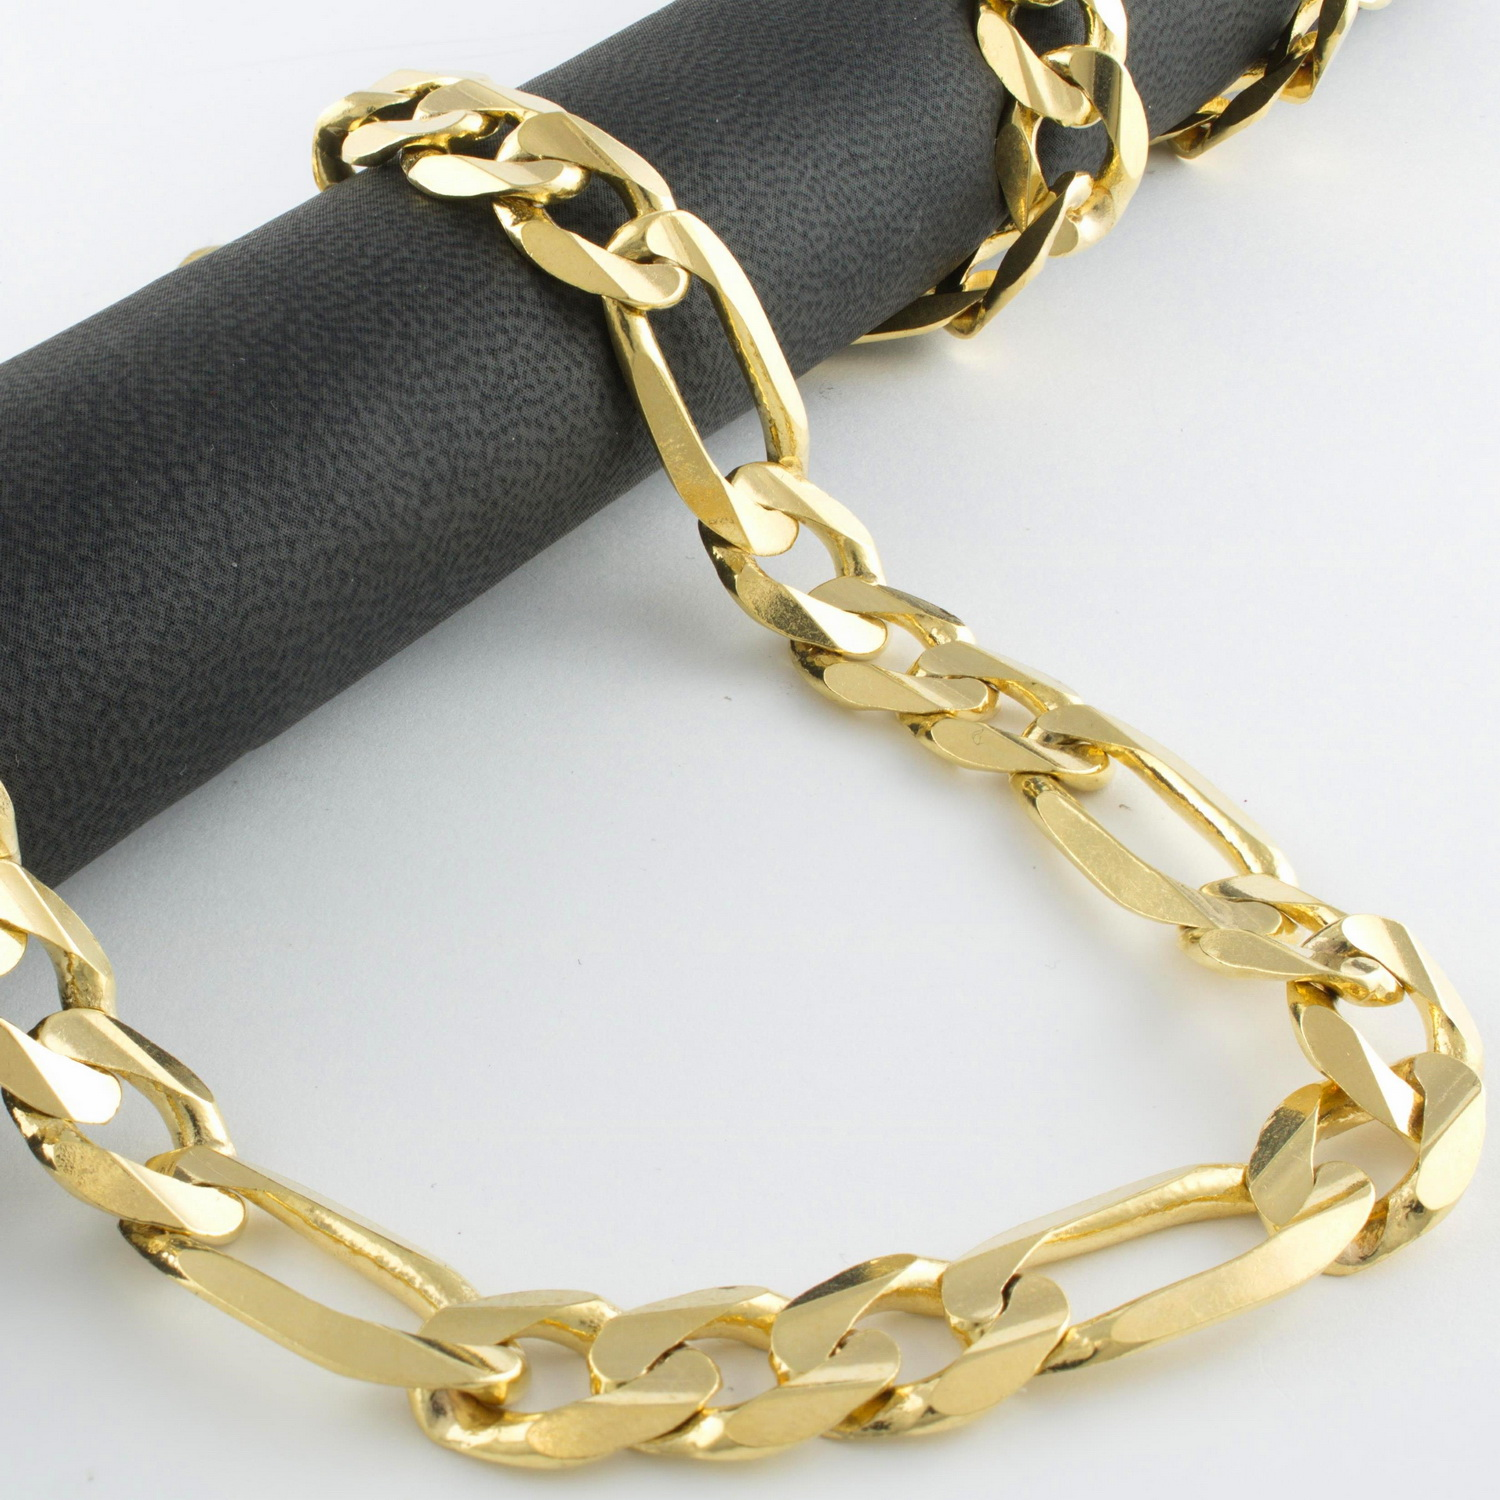 bracelet htm link shopbop gold vp lane large v kenneth jay